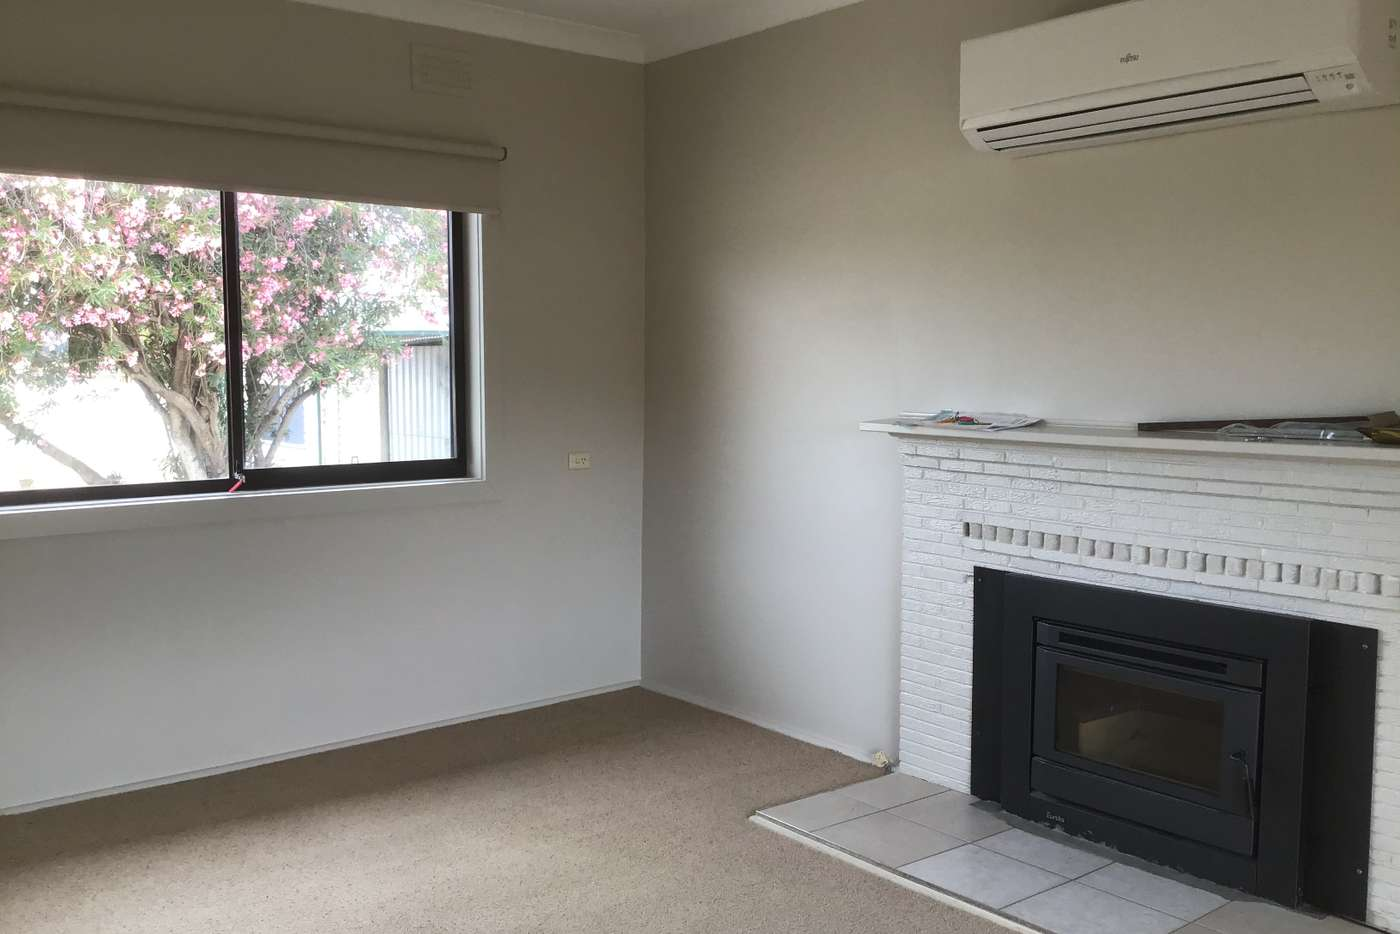 Sixth view of Homely house listing, 30 Southey Street, Jerilderie NSW 2716